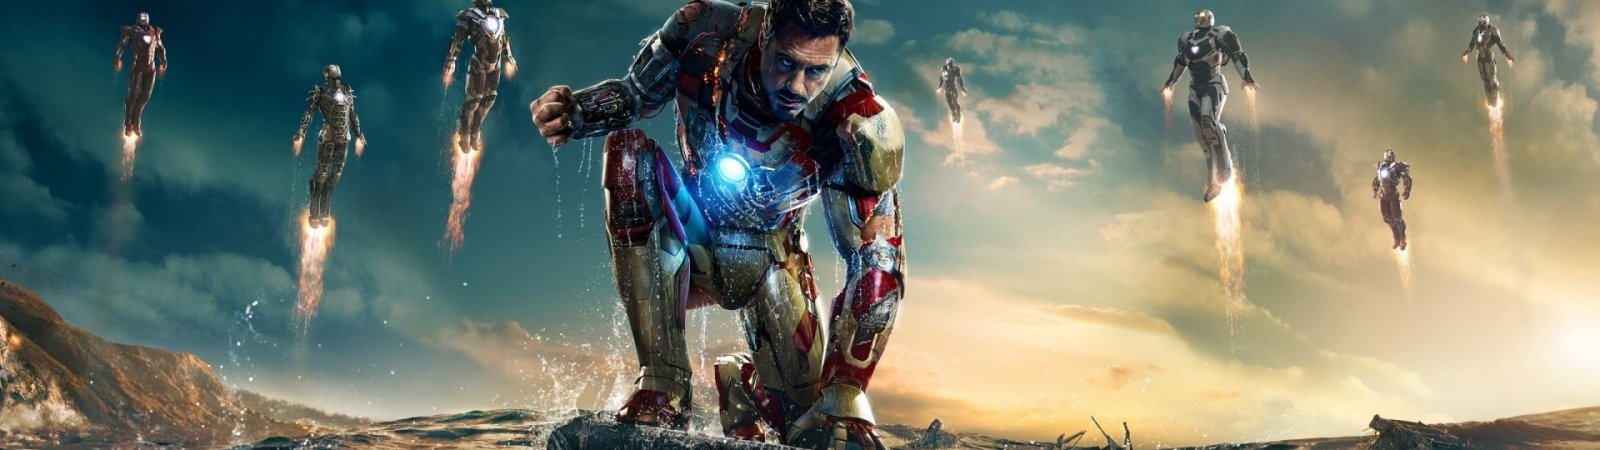 Photo du film : Iron Man 3